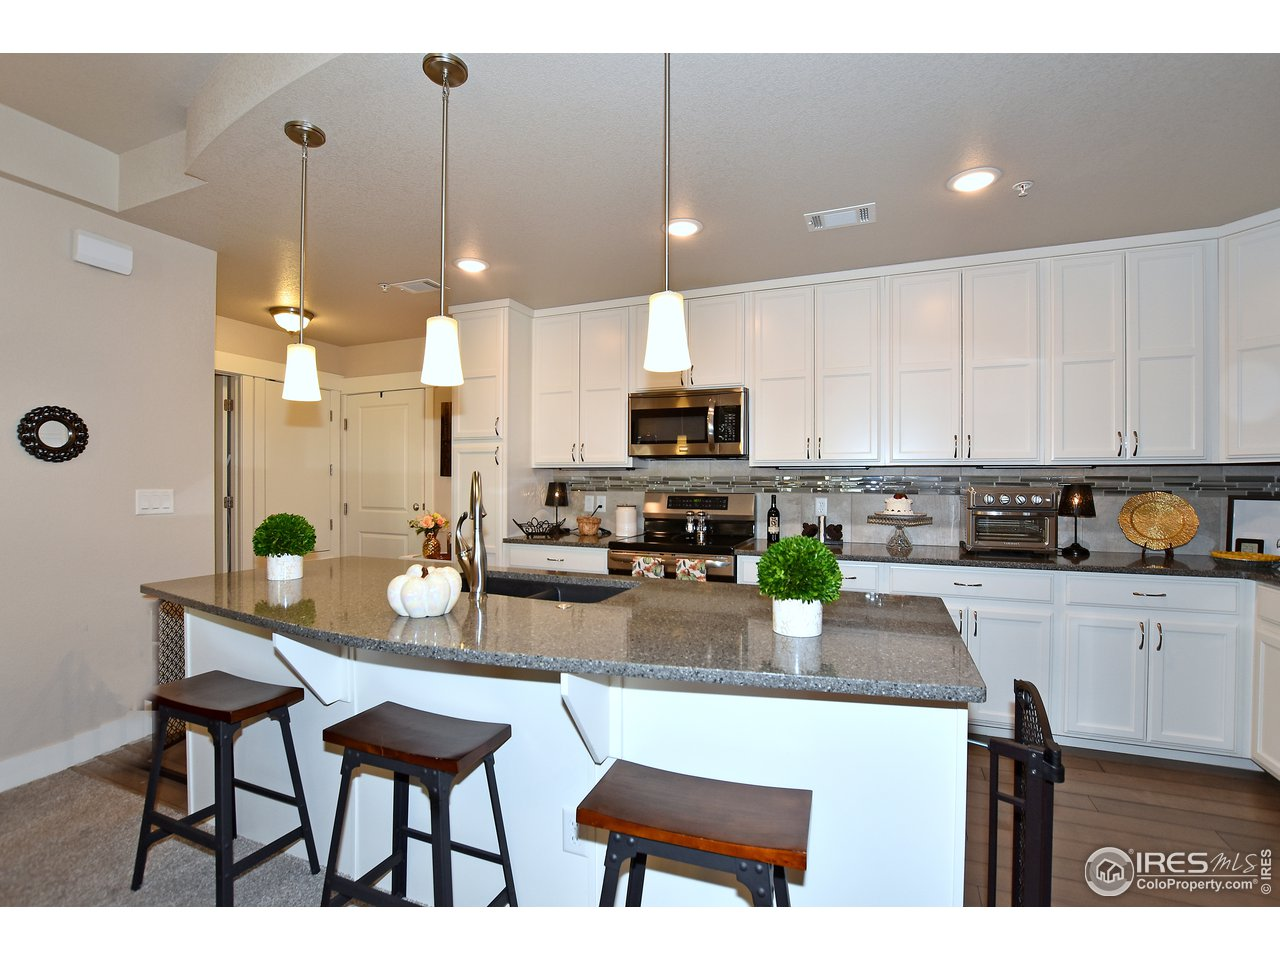 Large center island opens up to large dining and great room space